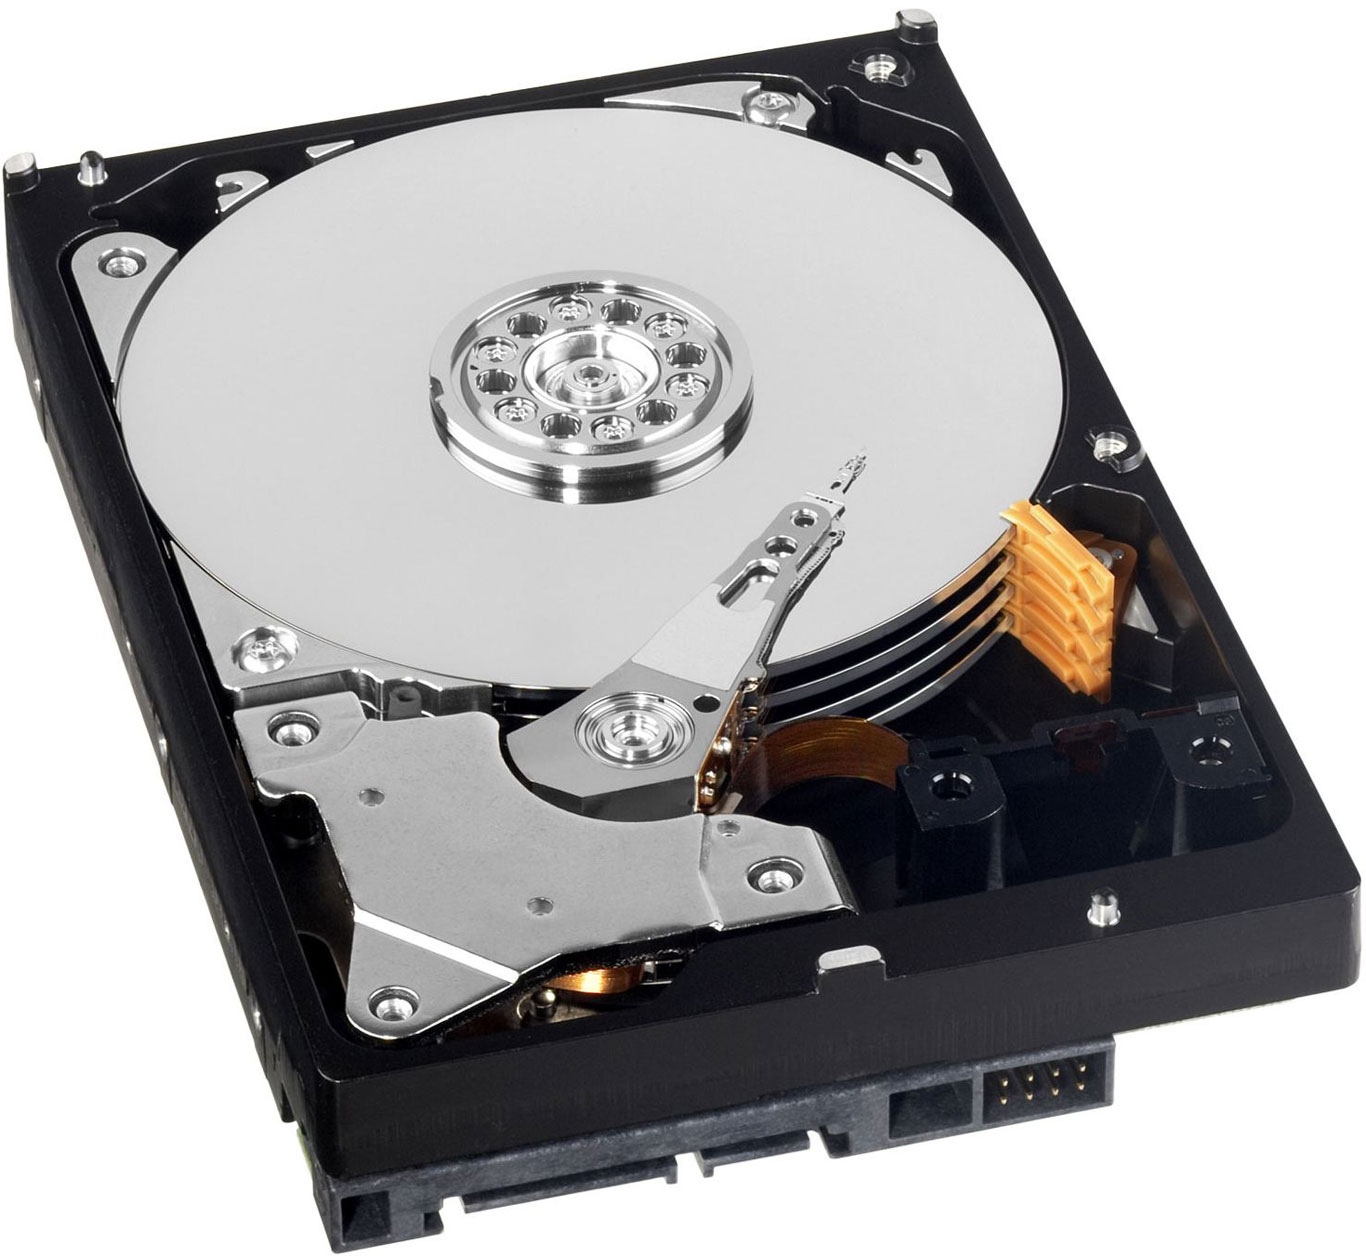 PC Sata 640GB HDD